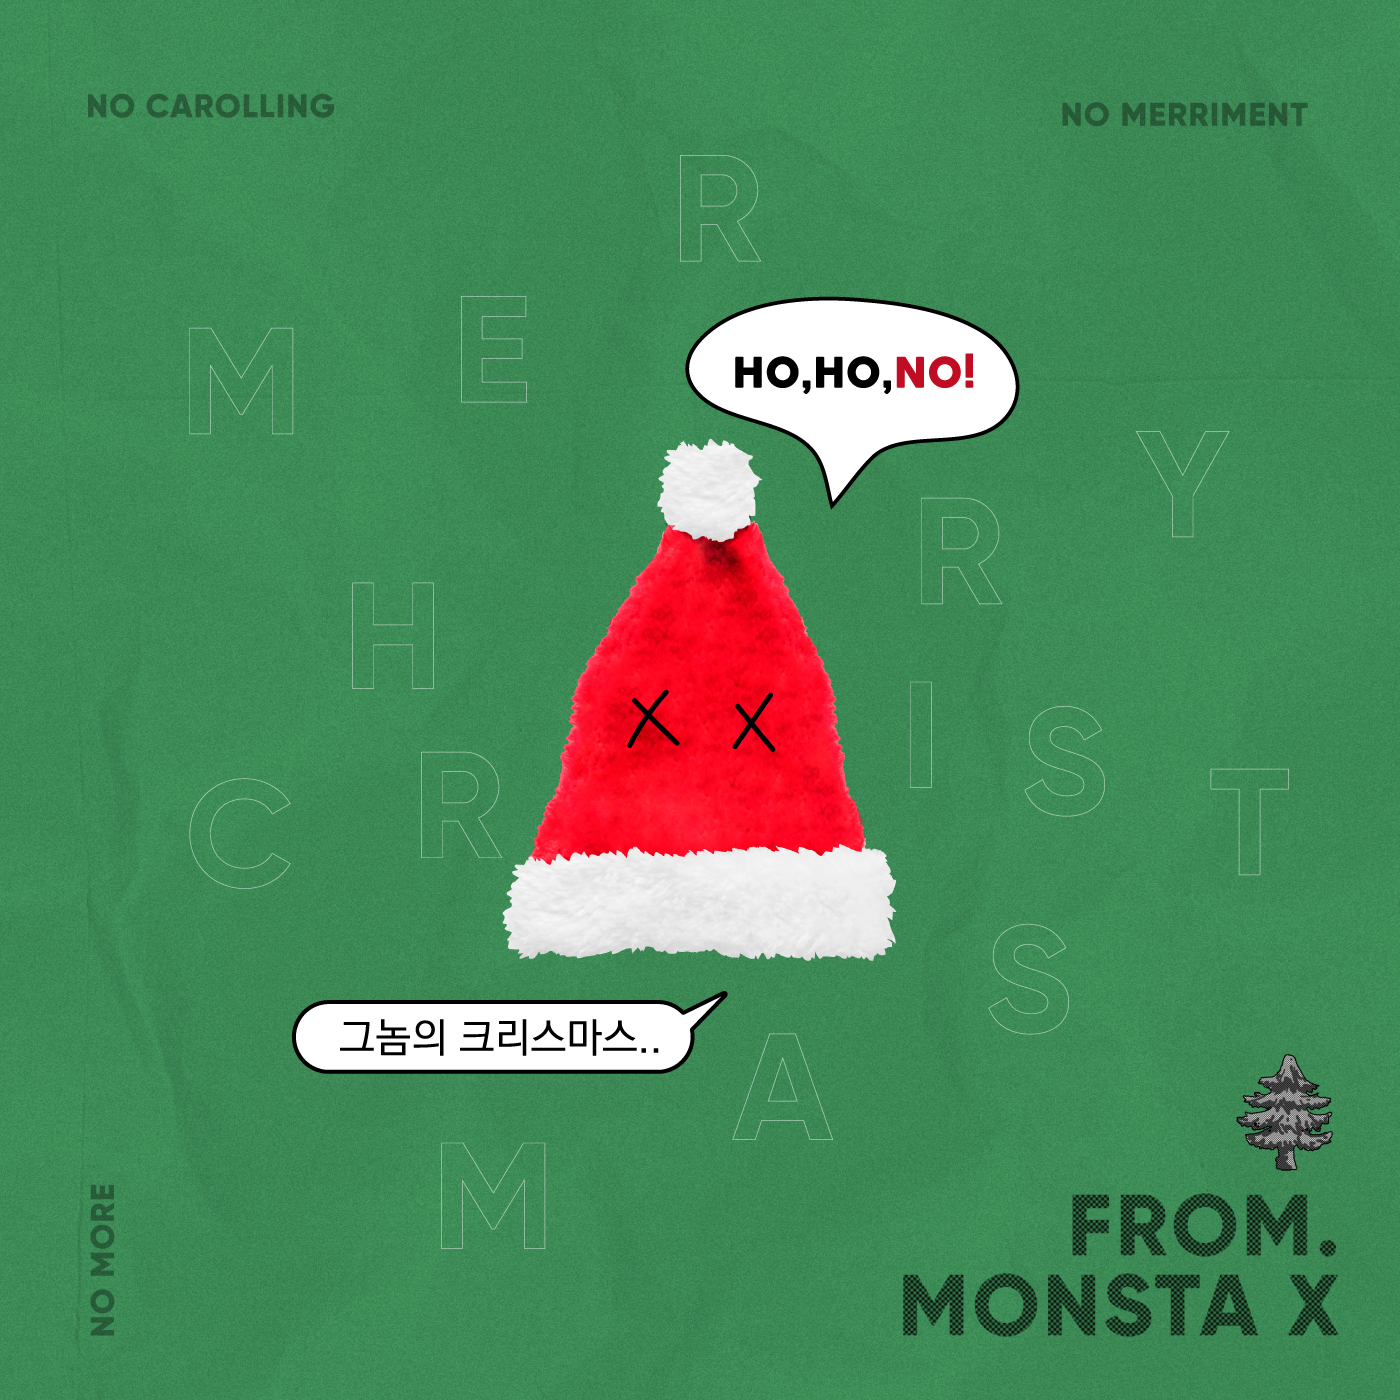 Lonely On Christmas.Lonely Christmas Monsta X Kpop Wiki Fandom Powered By